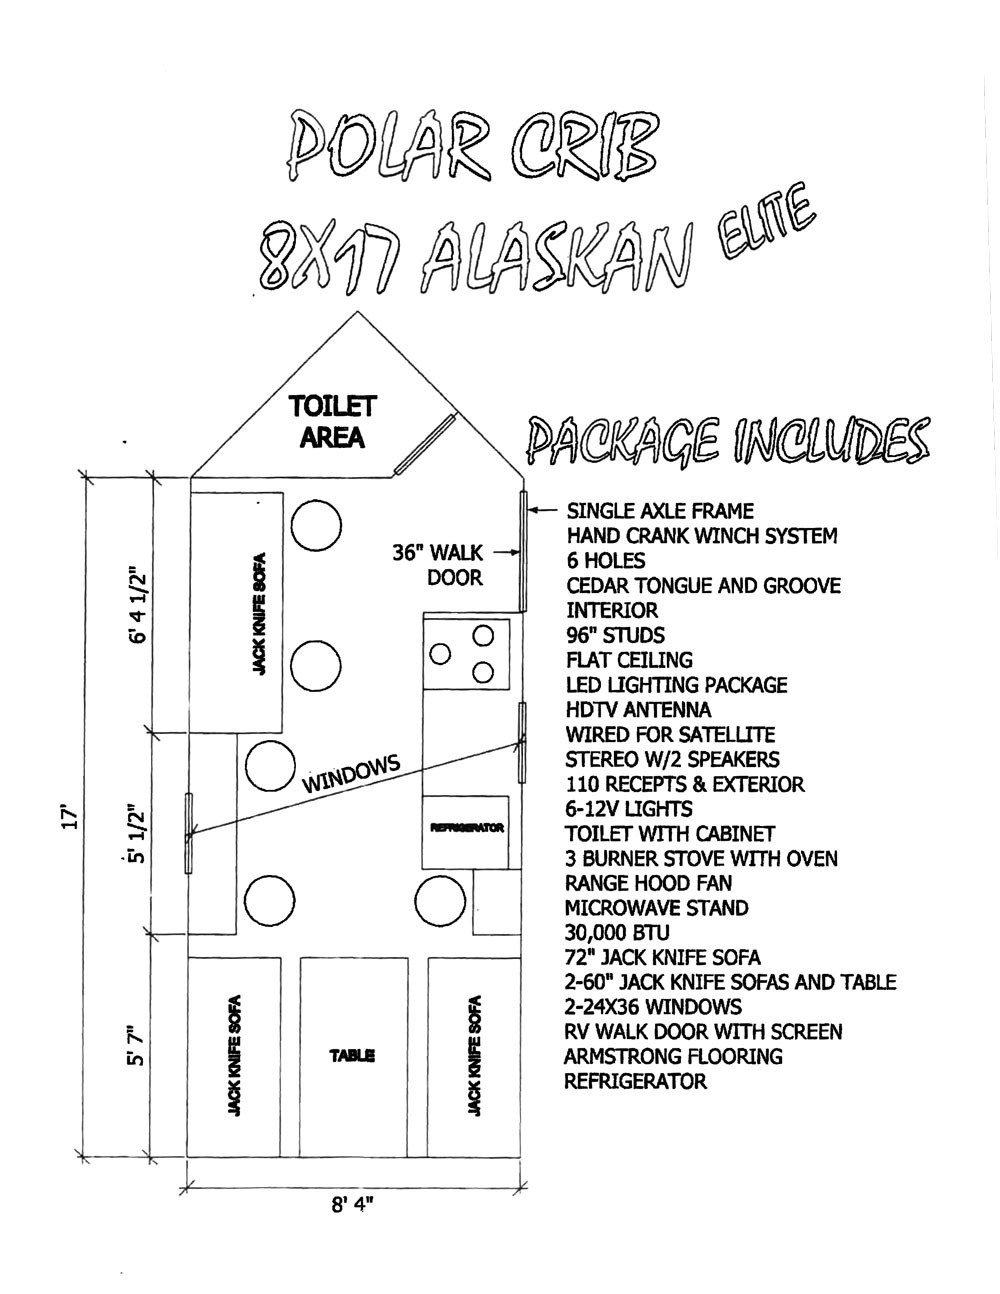 Portable Fish House Plans Lovely Polar Crib Fish Houses for Sale All Campers Camper